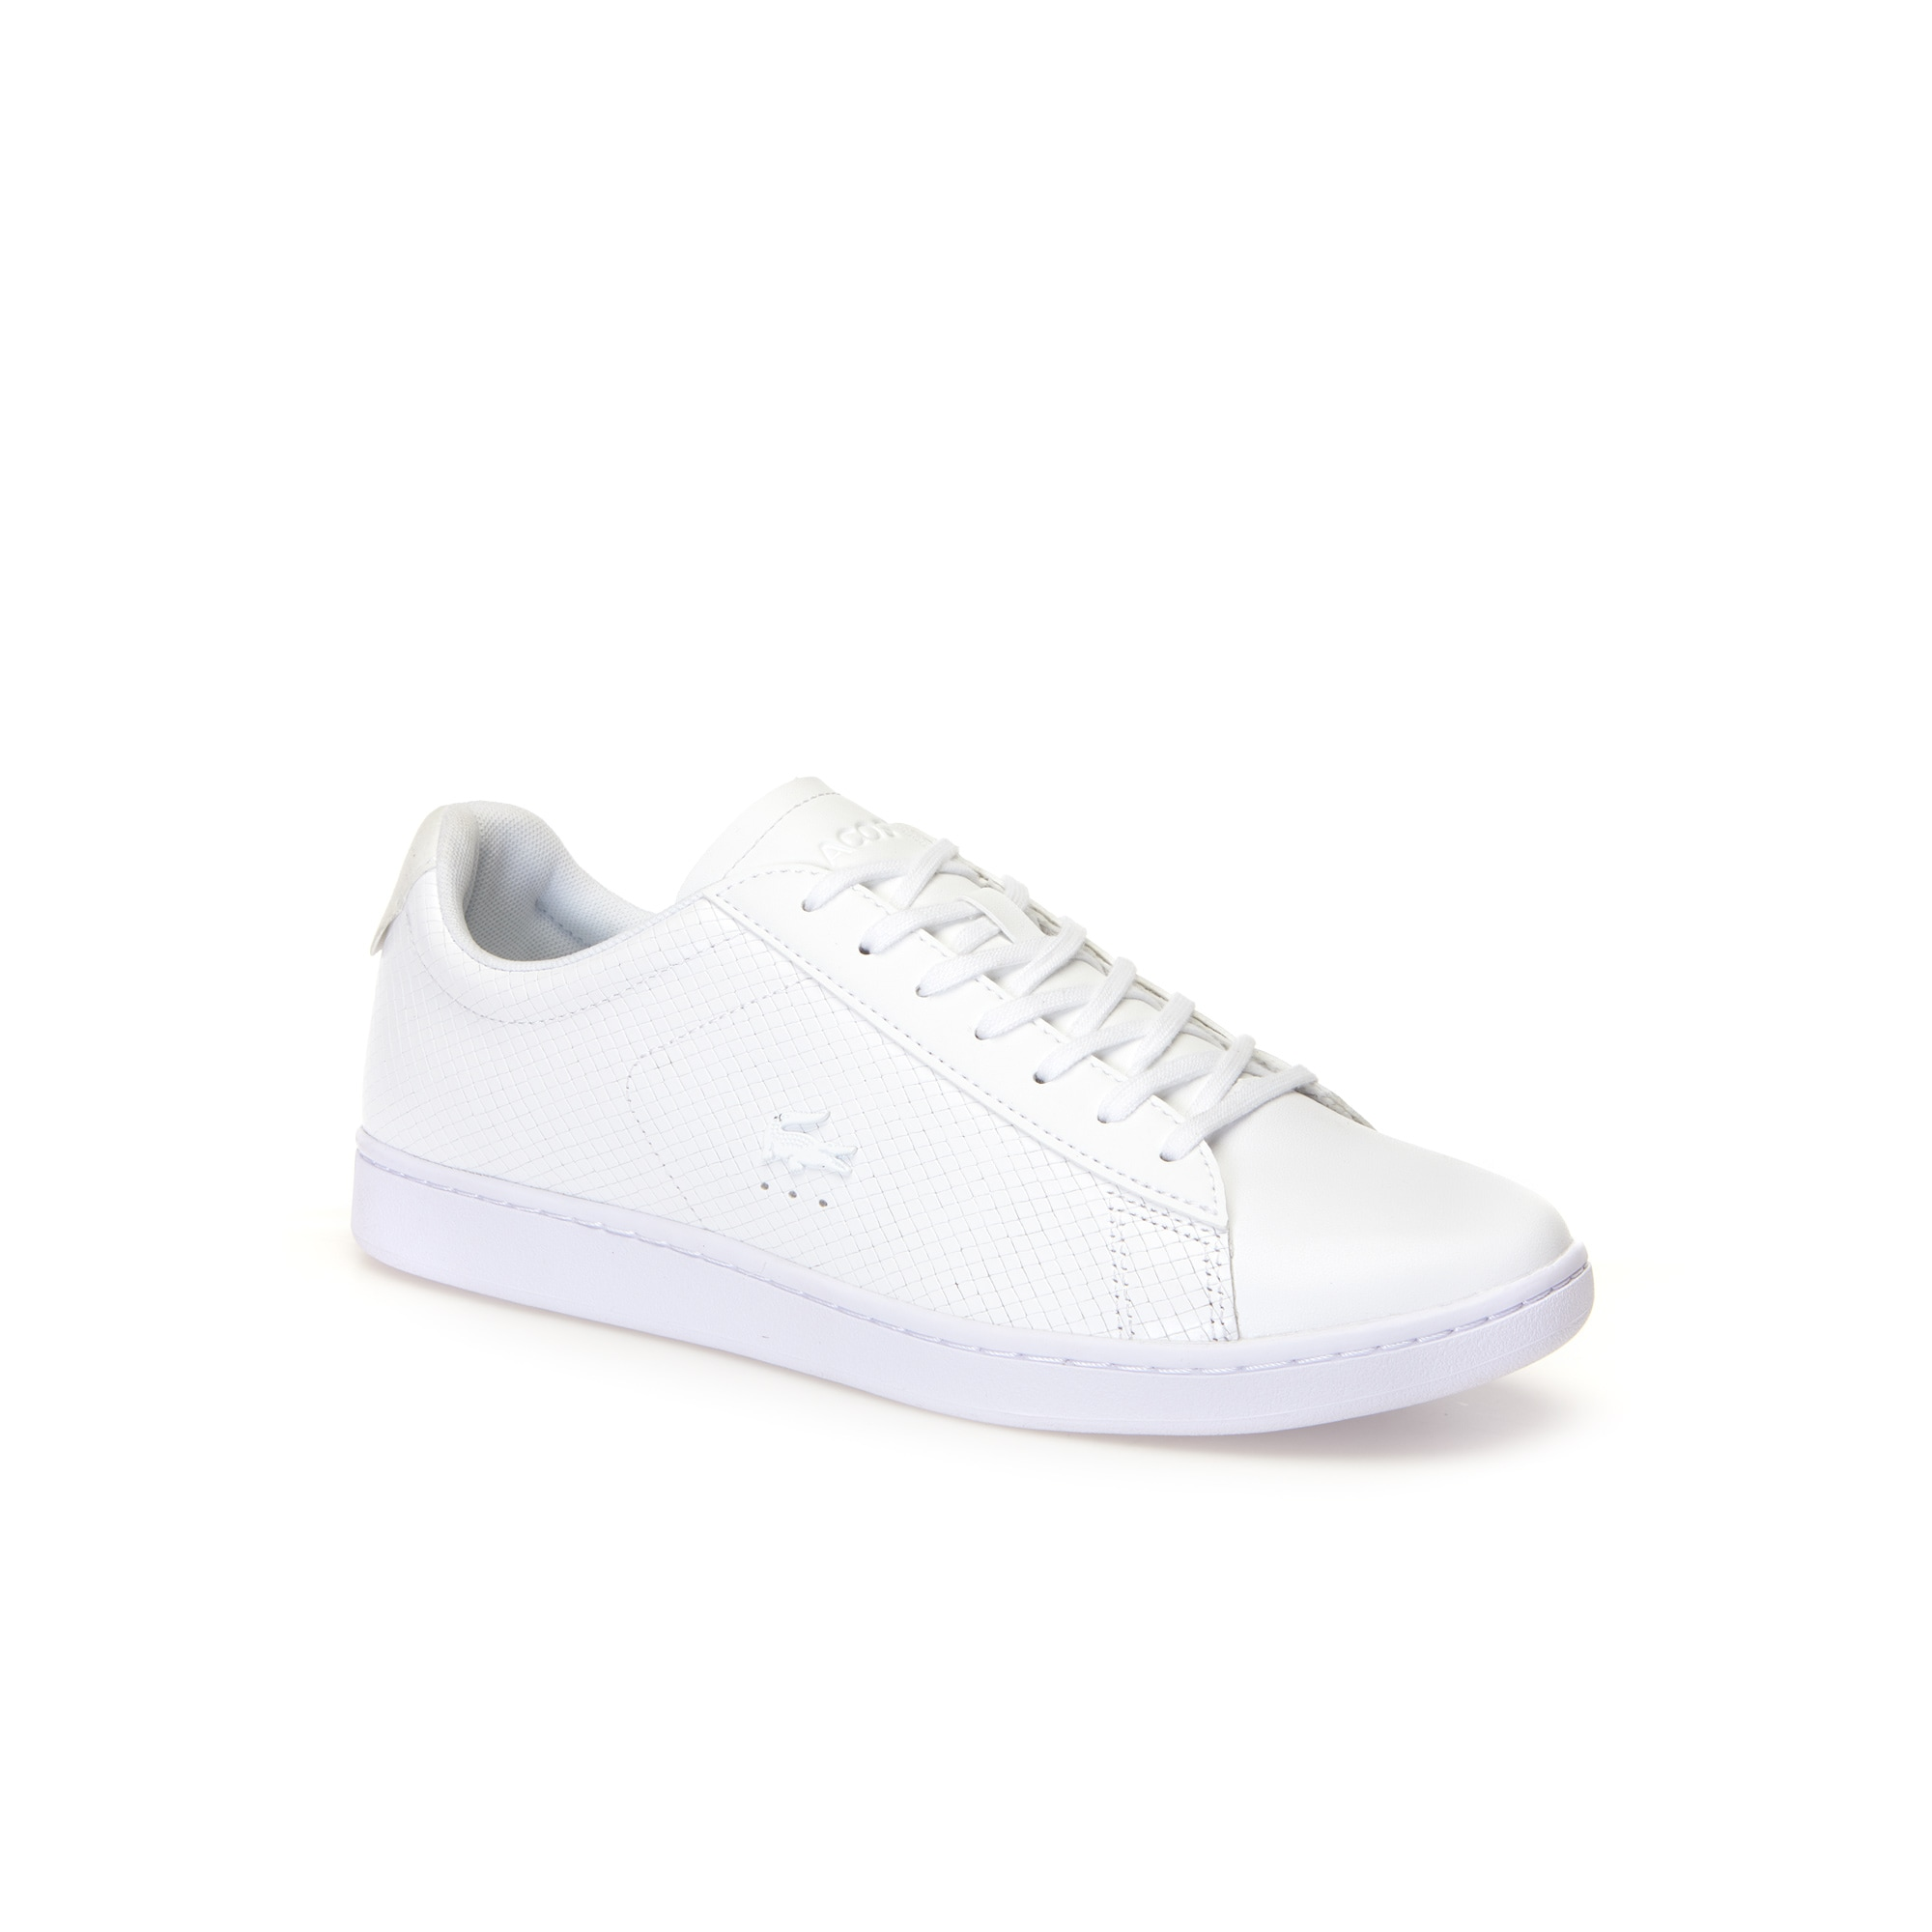 Men's Carnaby Evo Textured Nappa Leather Trainers